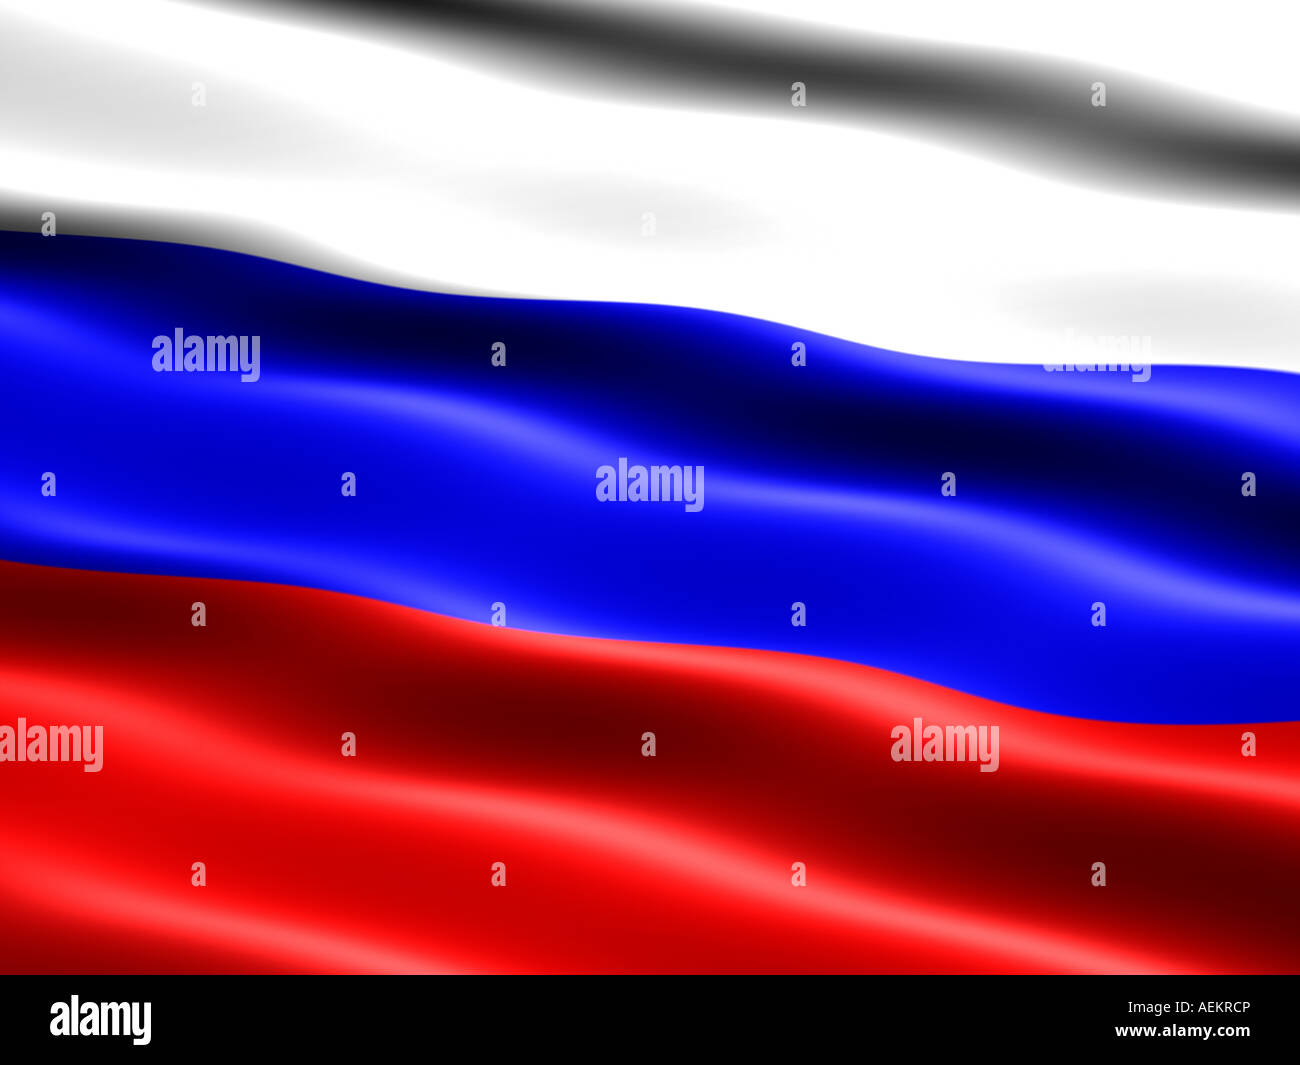 Computer generated illustration of the flag of Russia with silky appearance and waves - Stock Image